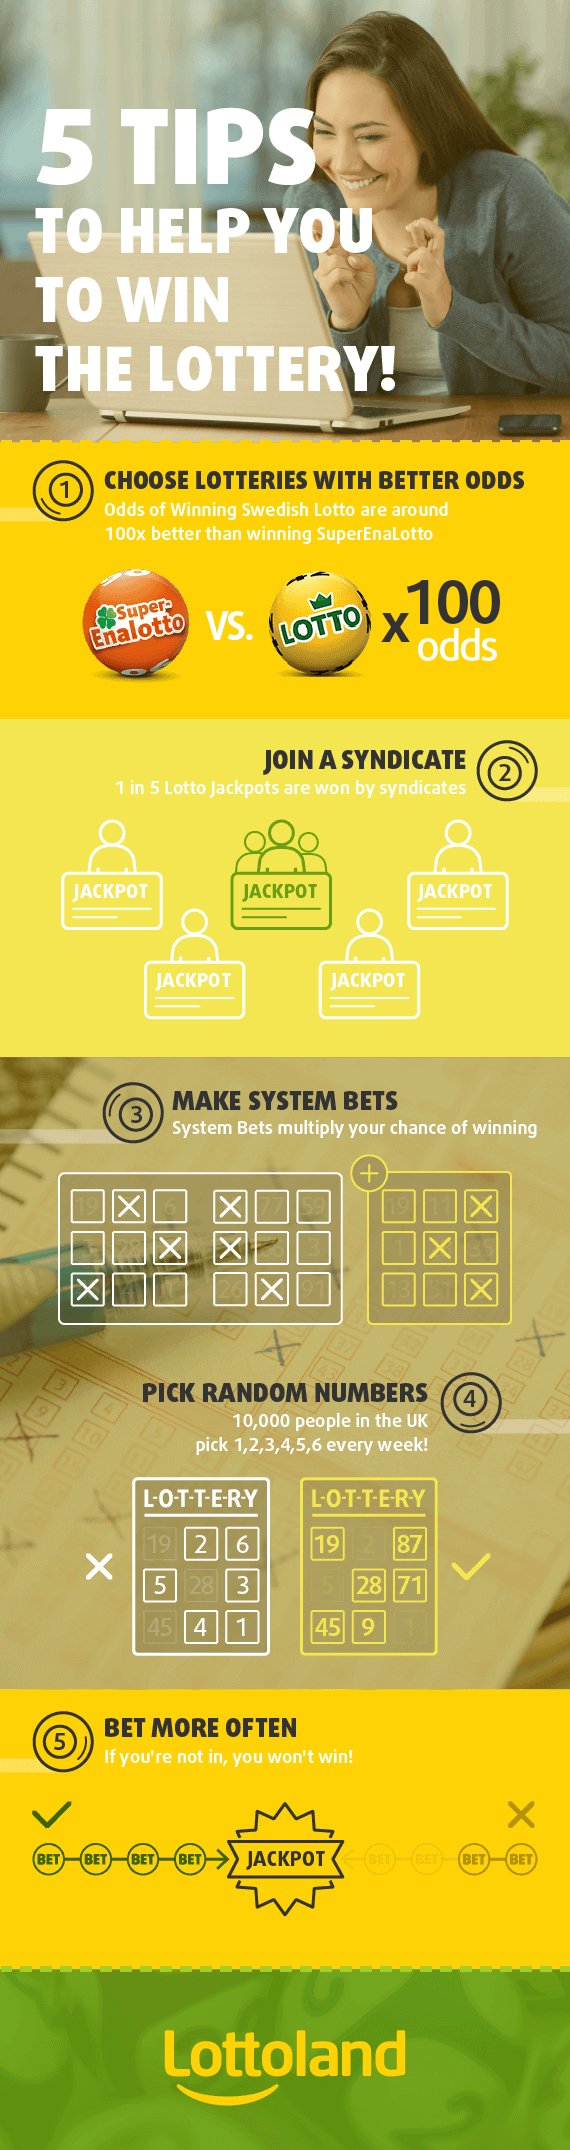 How To Win The Jackpot - Lottoland com au